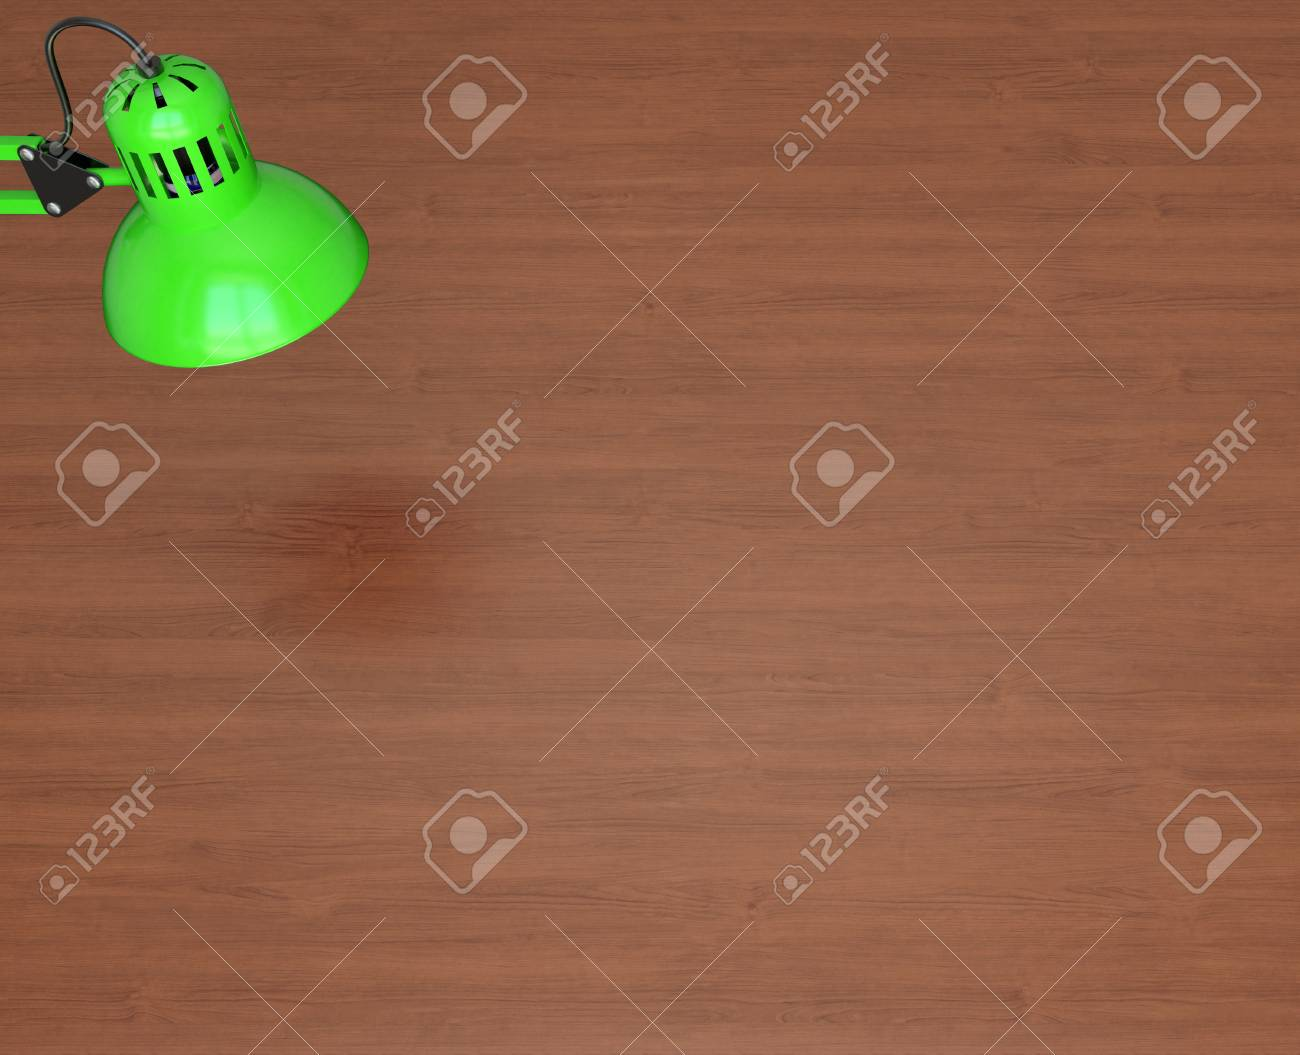 Desktop Surface And Green Lamp 3d Render Stock Photo, Picture And ...